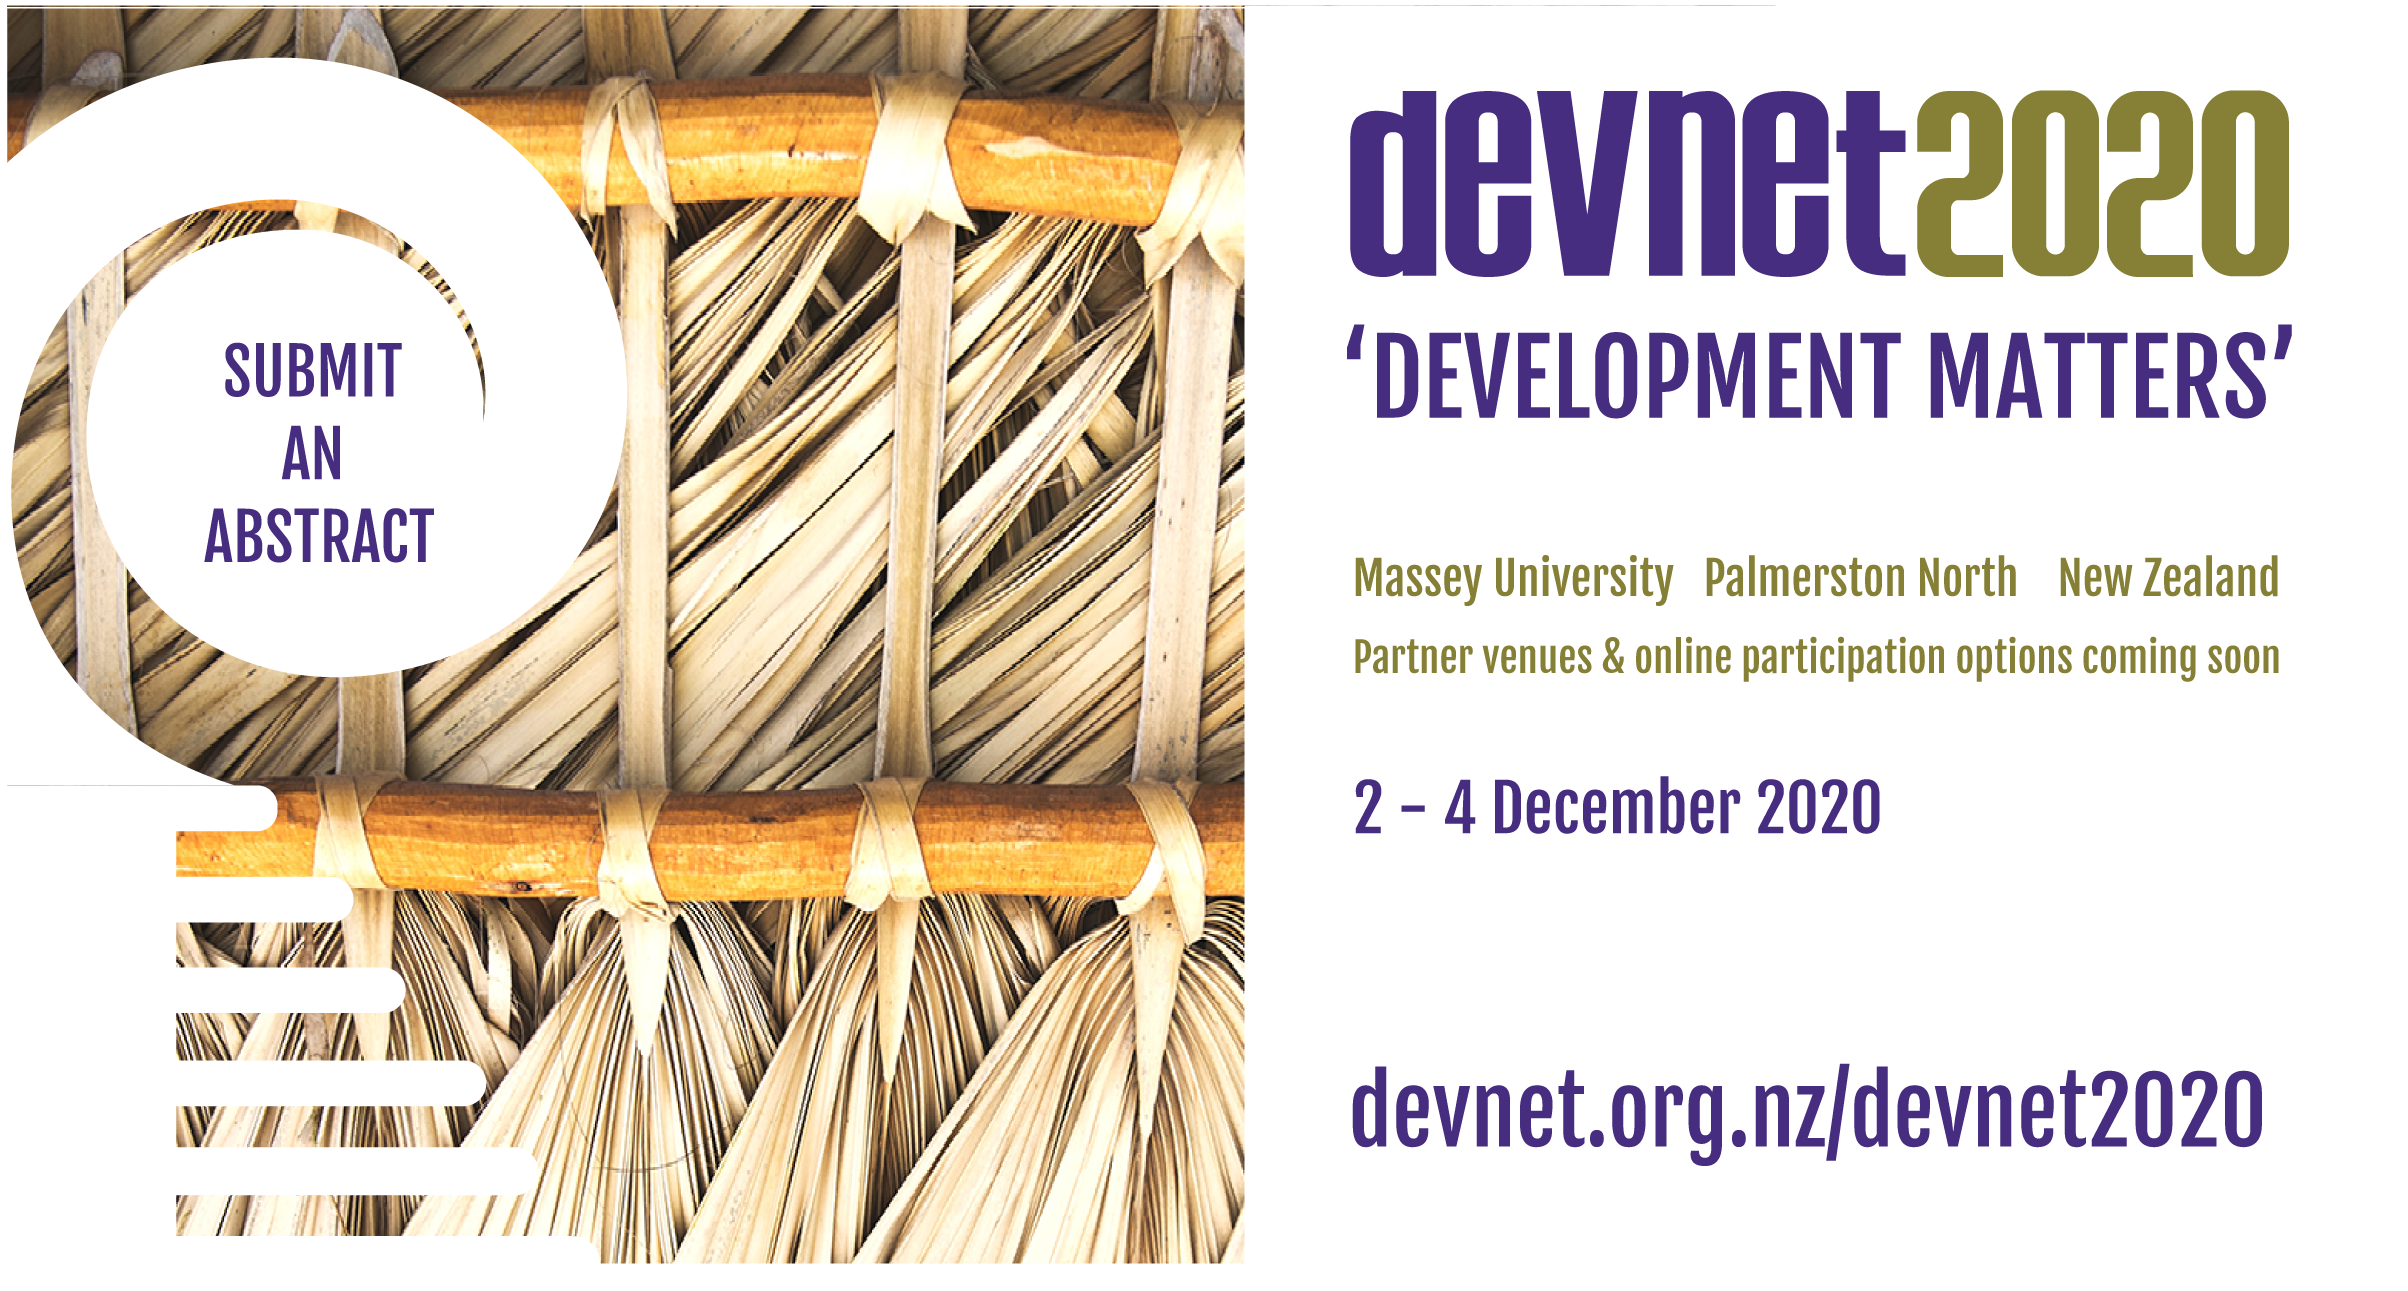 Submit an abstract for a research or applied presentation at DevNet2020 by 30 August 2020.